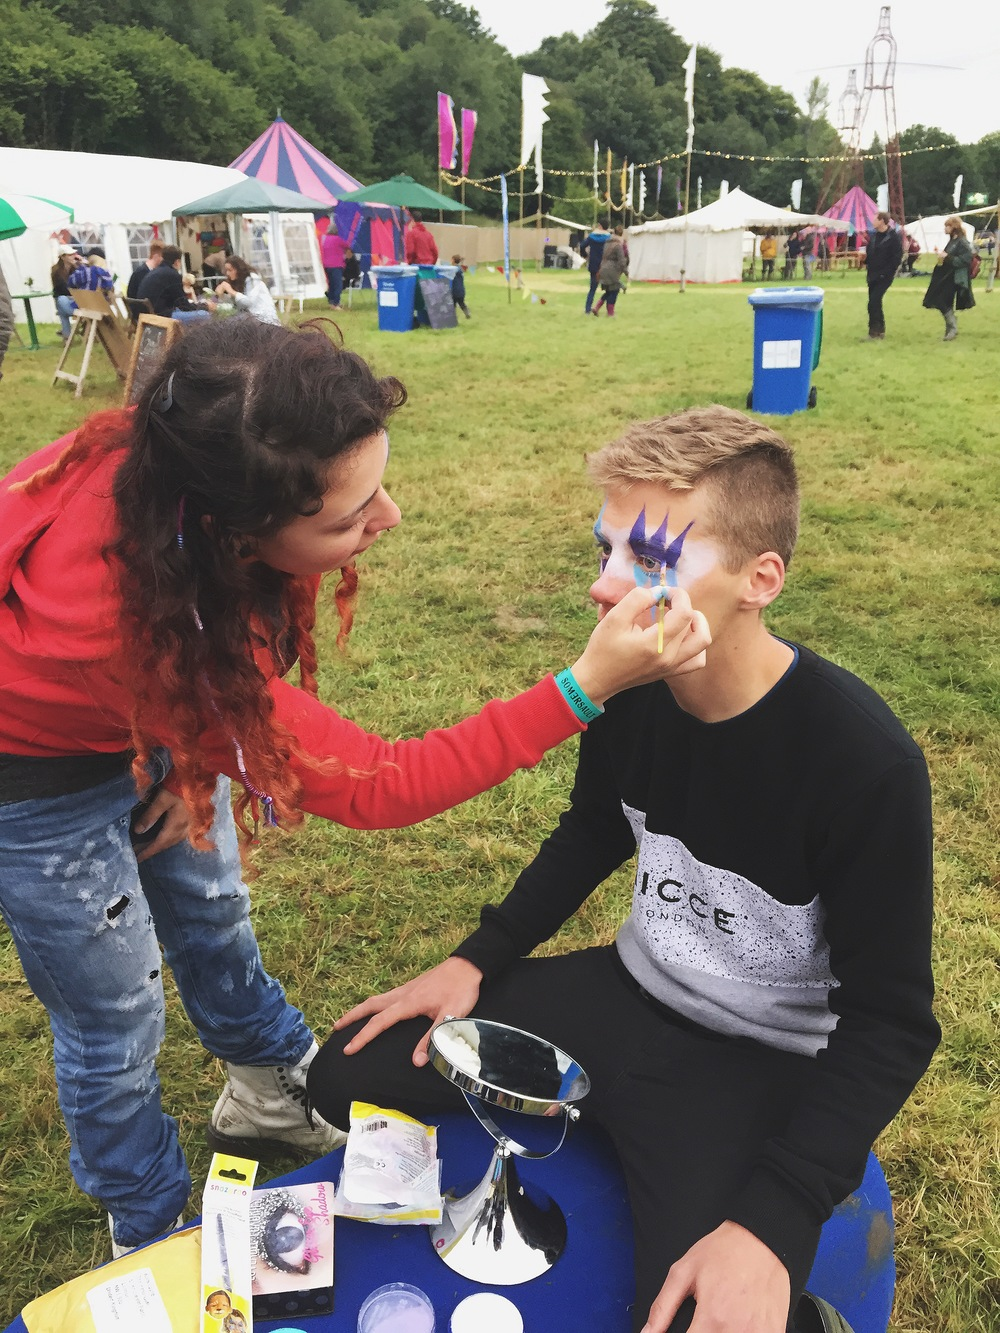 And one of our LICKALICKers decided to take up a new career in face painting